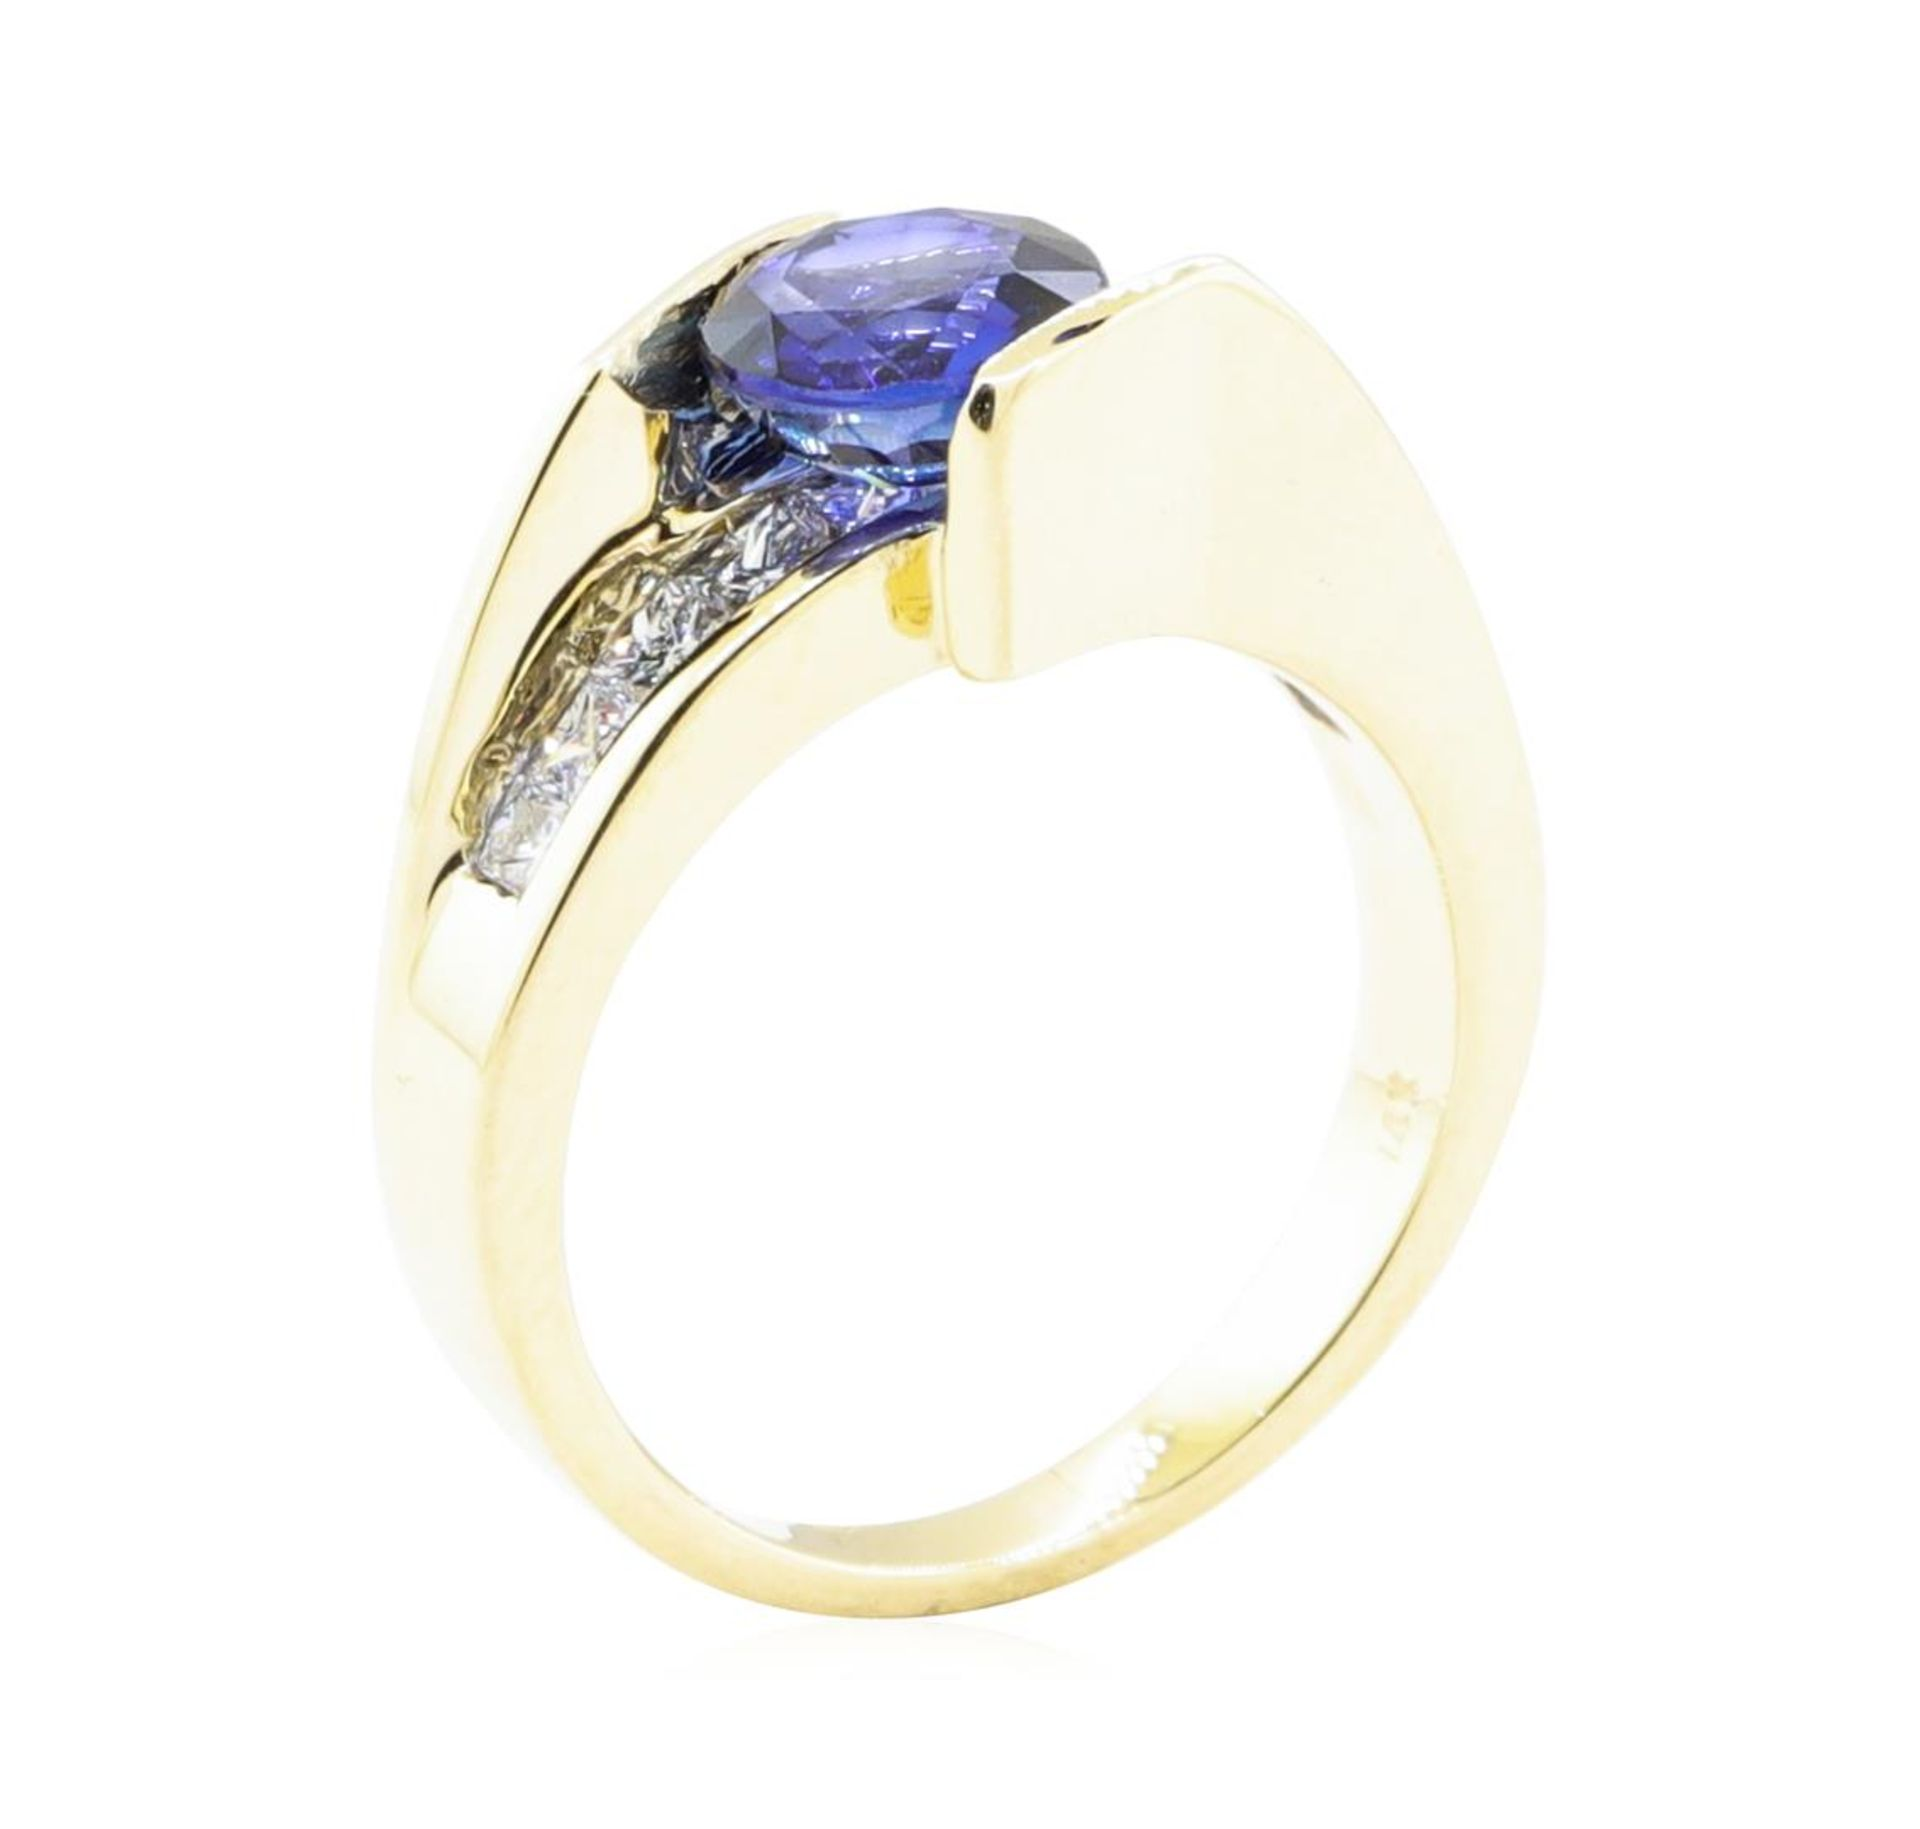 2.14 ctw Sapphire And Diamond Ring - 14KT Yellow Gold - Image 4 of 5